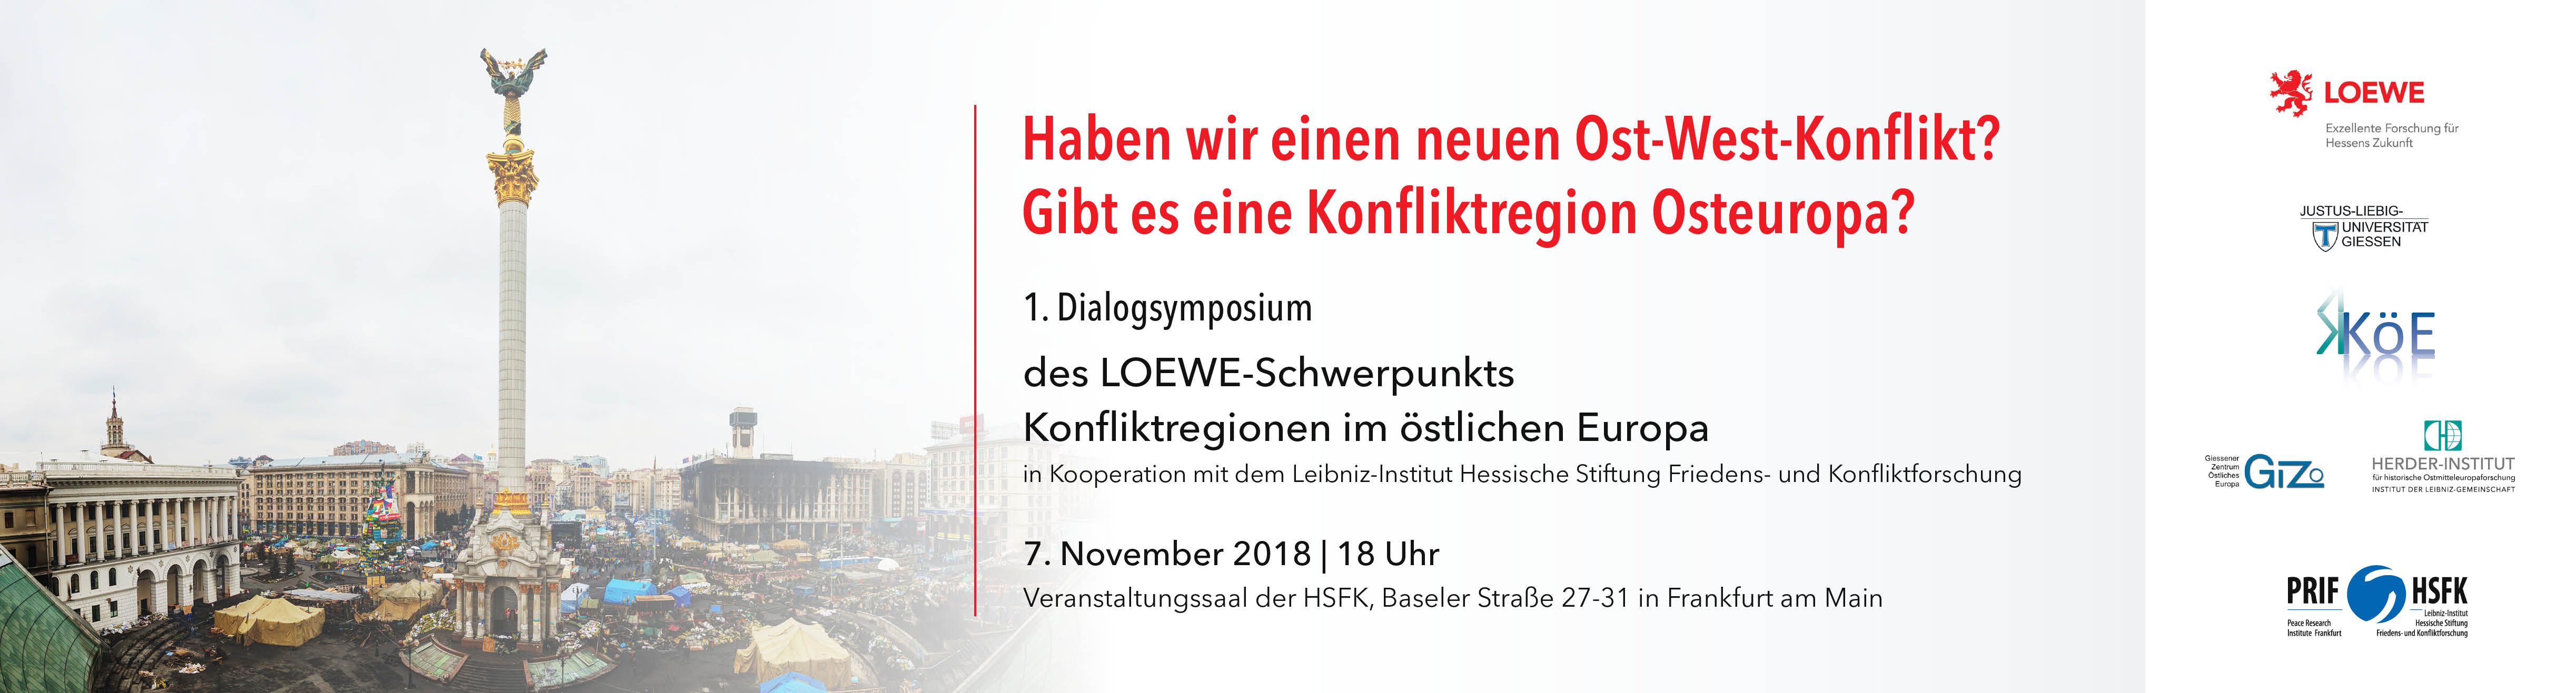 1. Dialogsymposium am 07. November, Frankfurt am Main